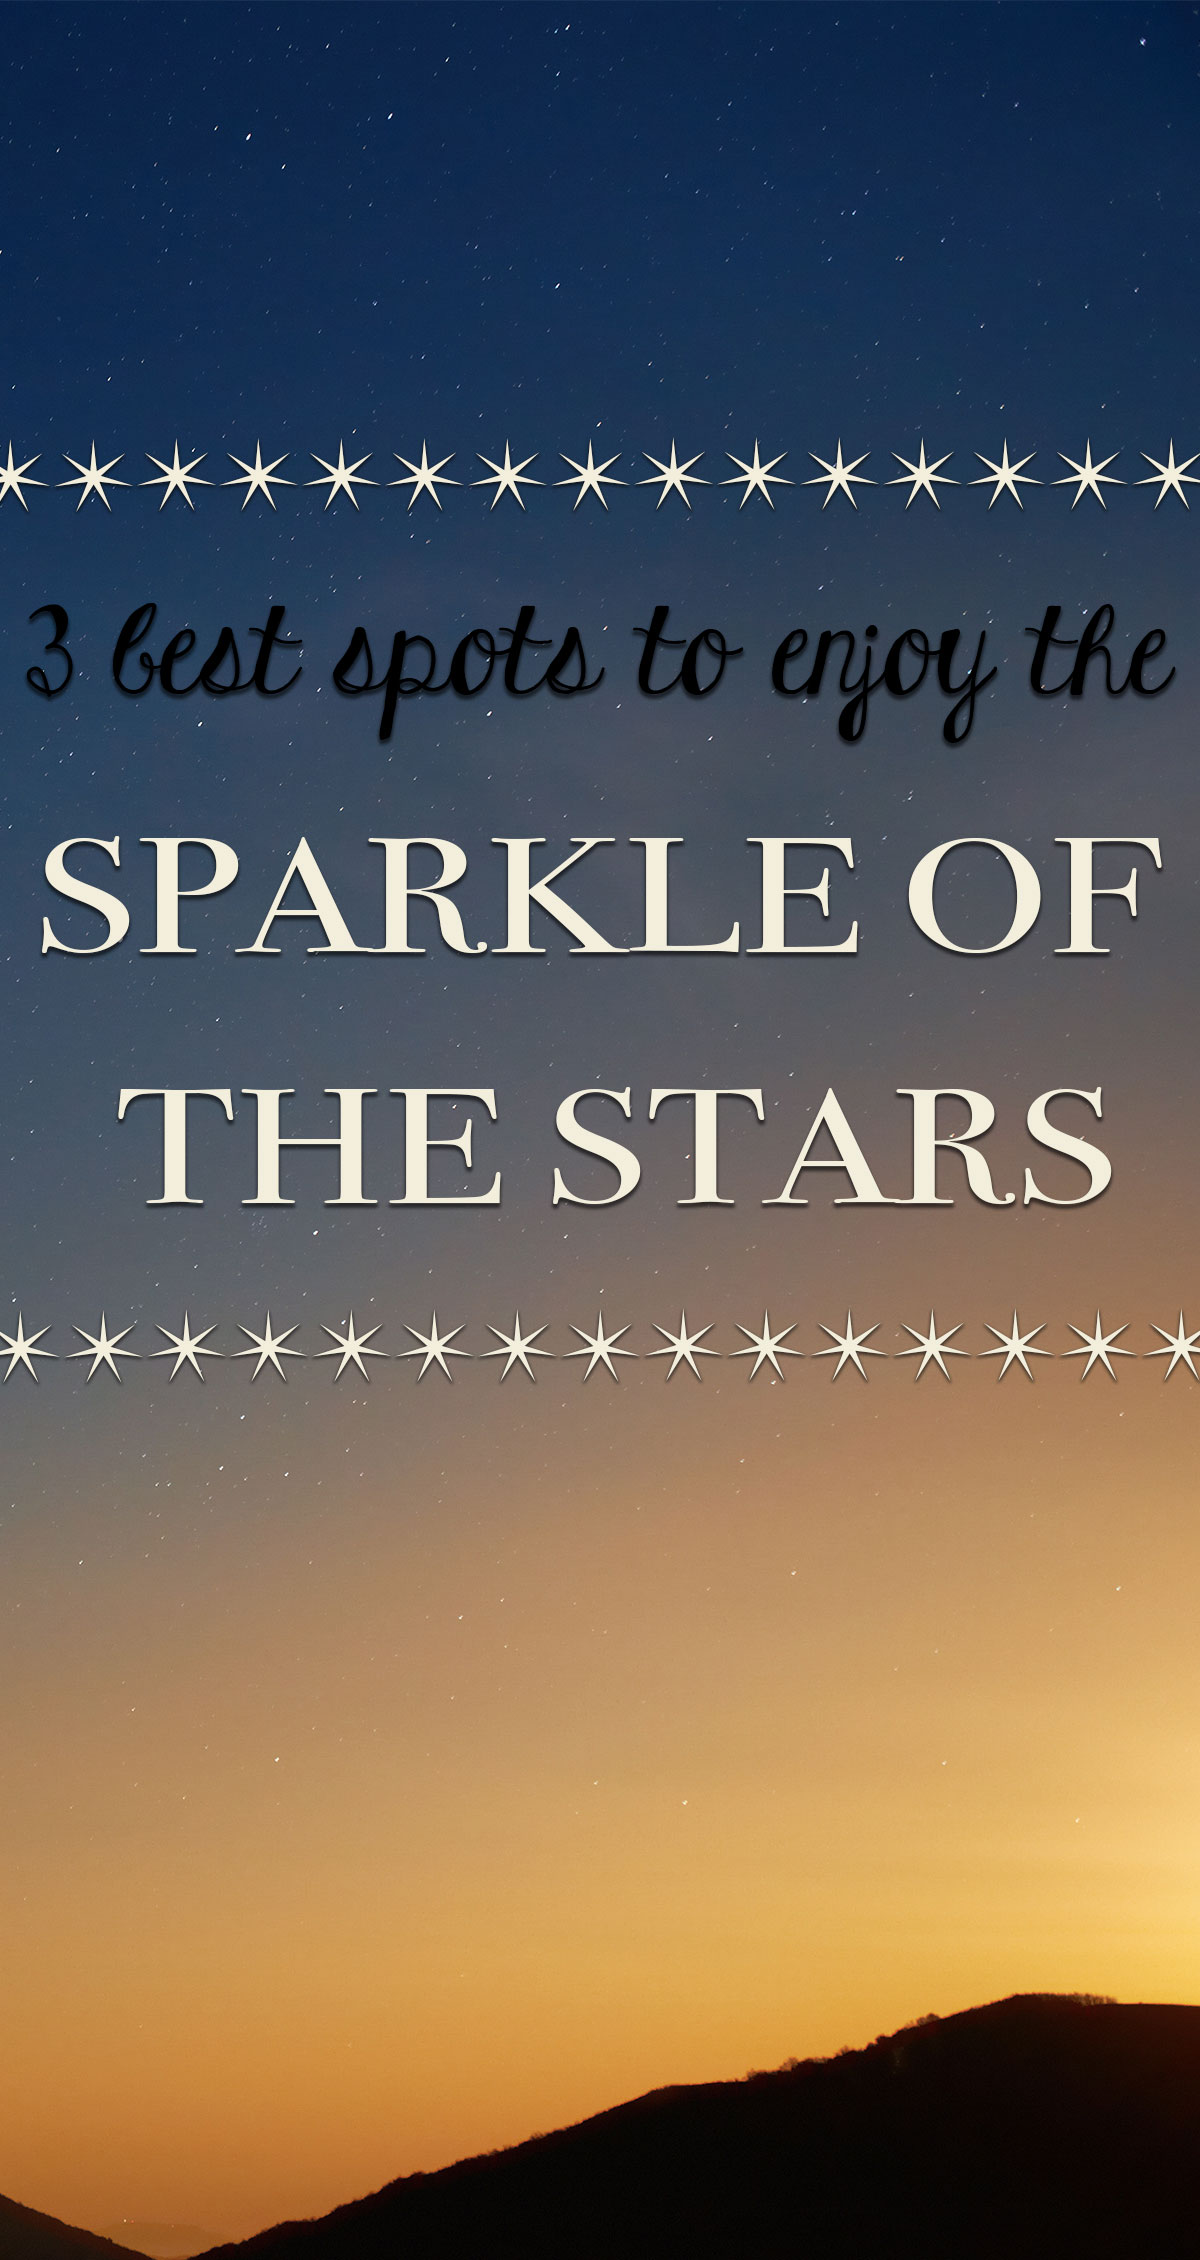 3 Best Spots to Enjoy the Sparkle of the Stars Pin